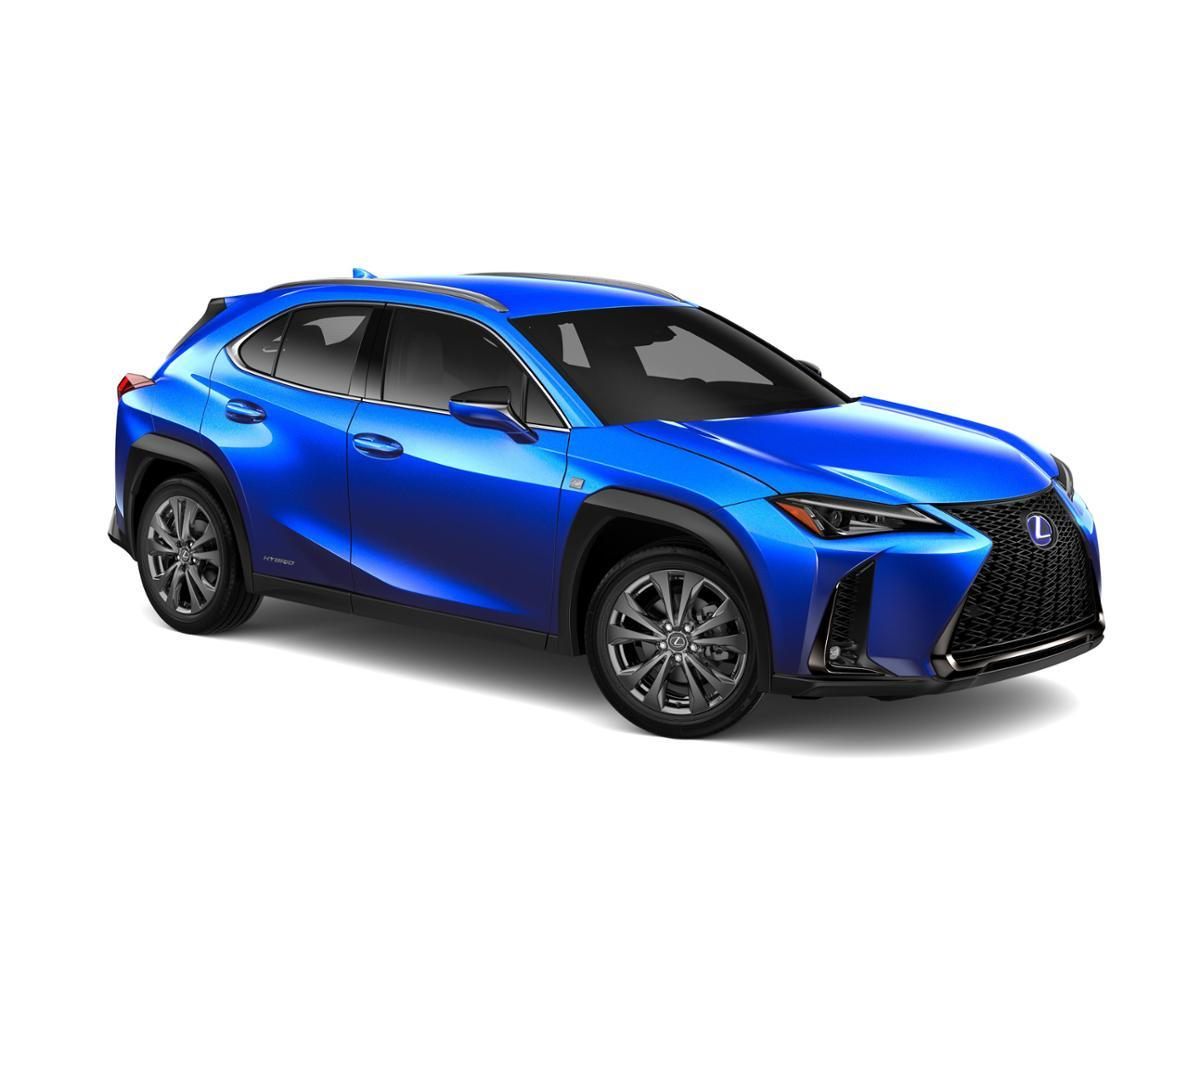 New 2019 Lexus UX 250h For Sale In Carlsbad, CA